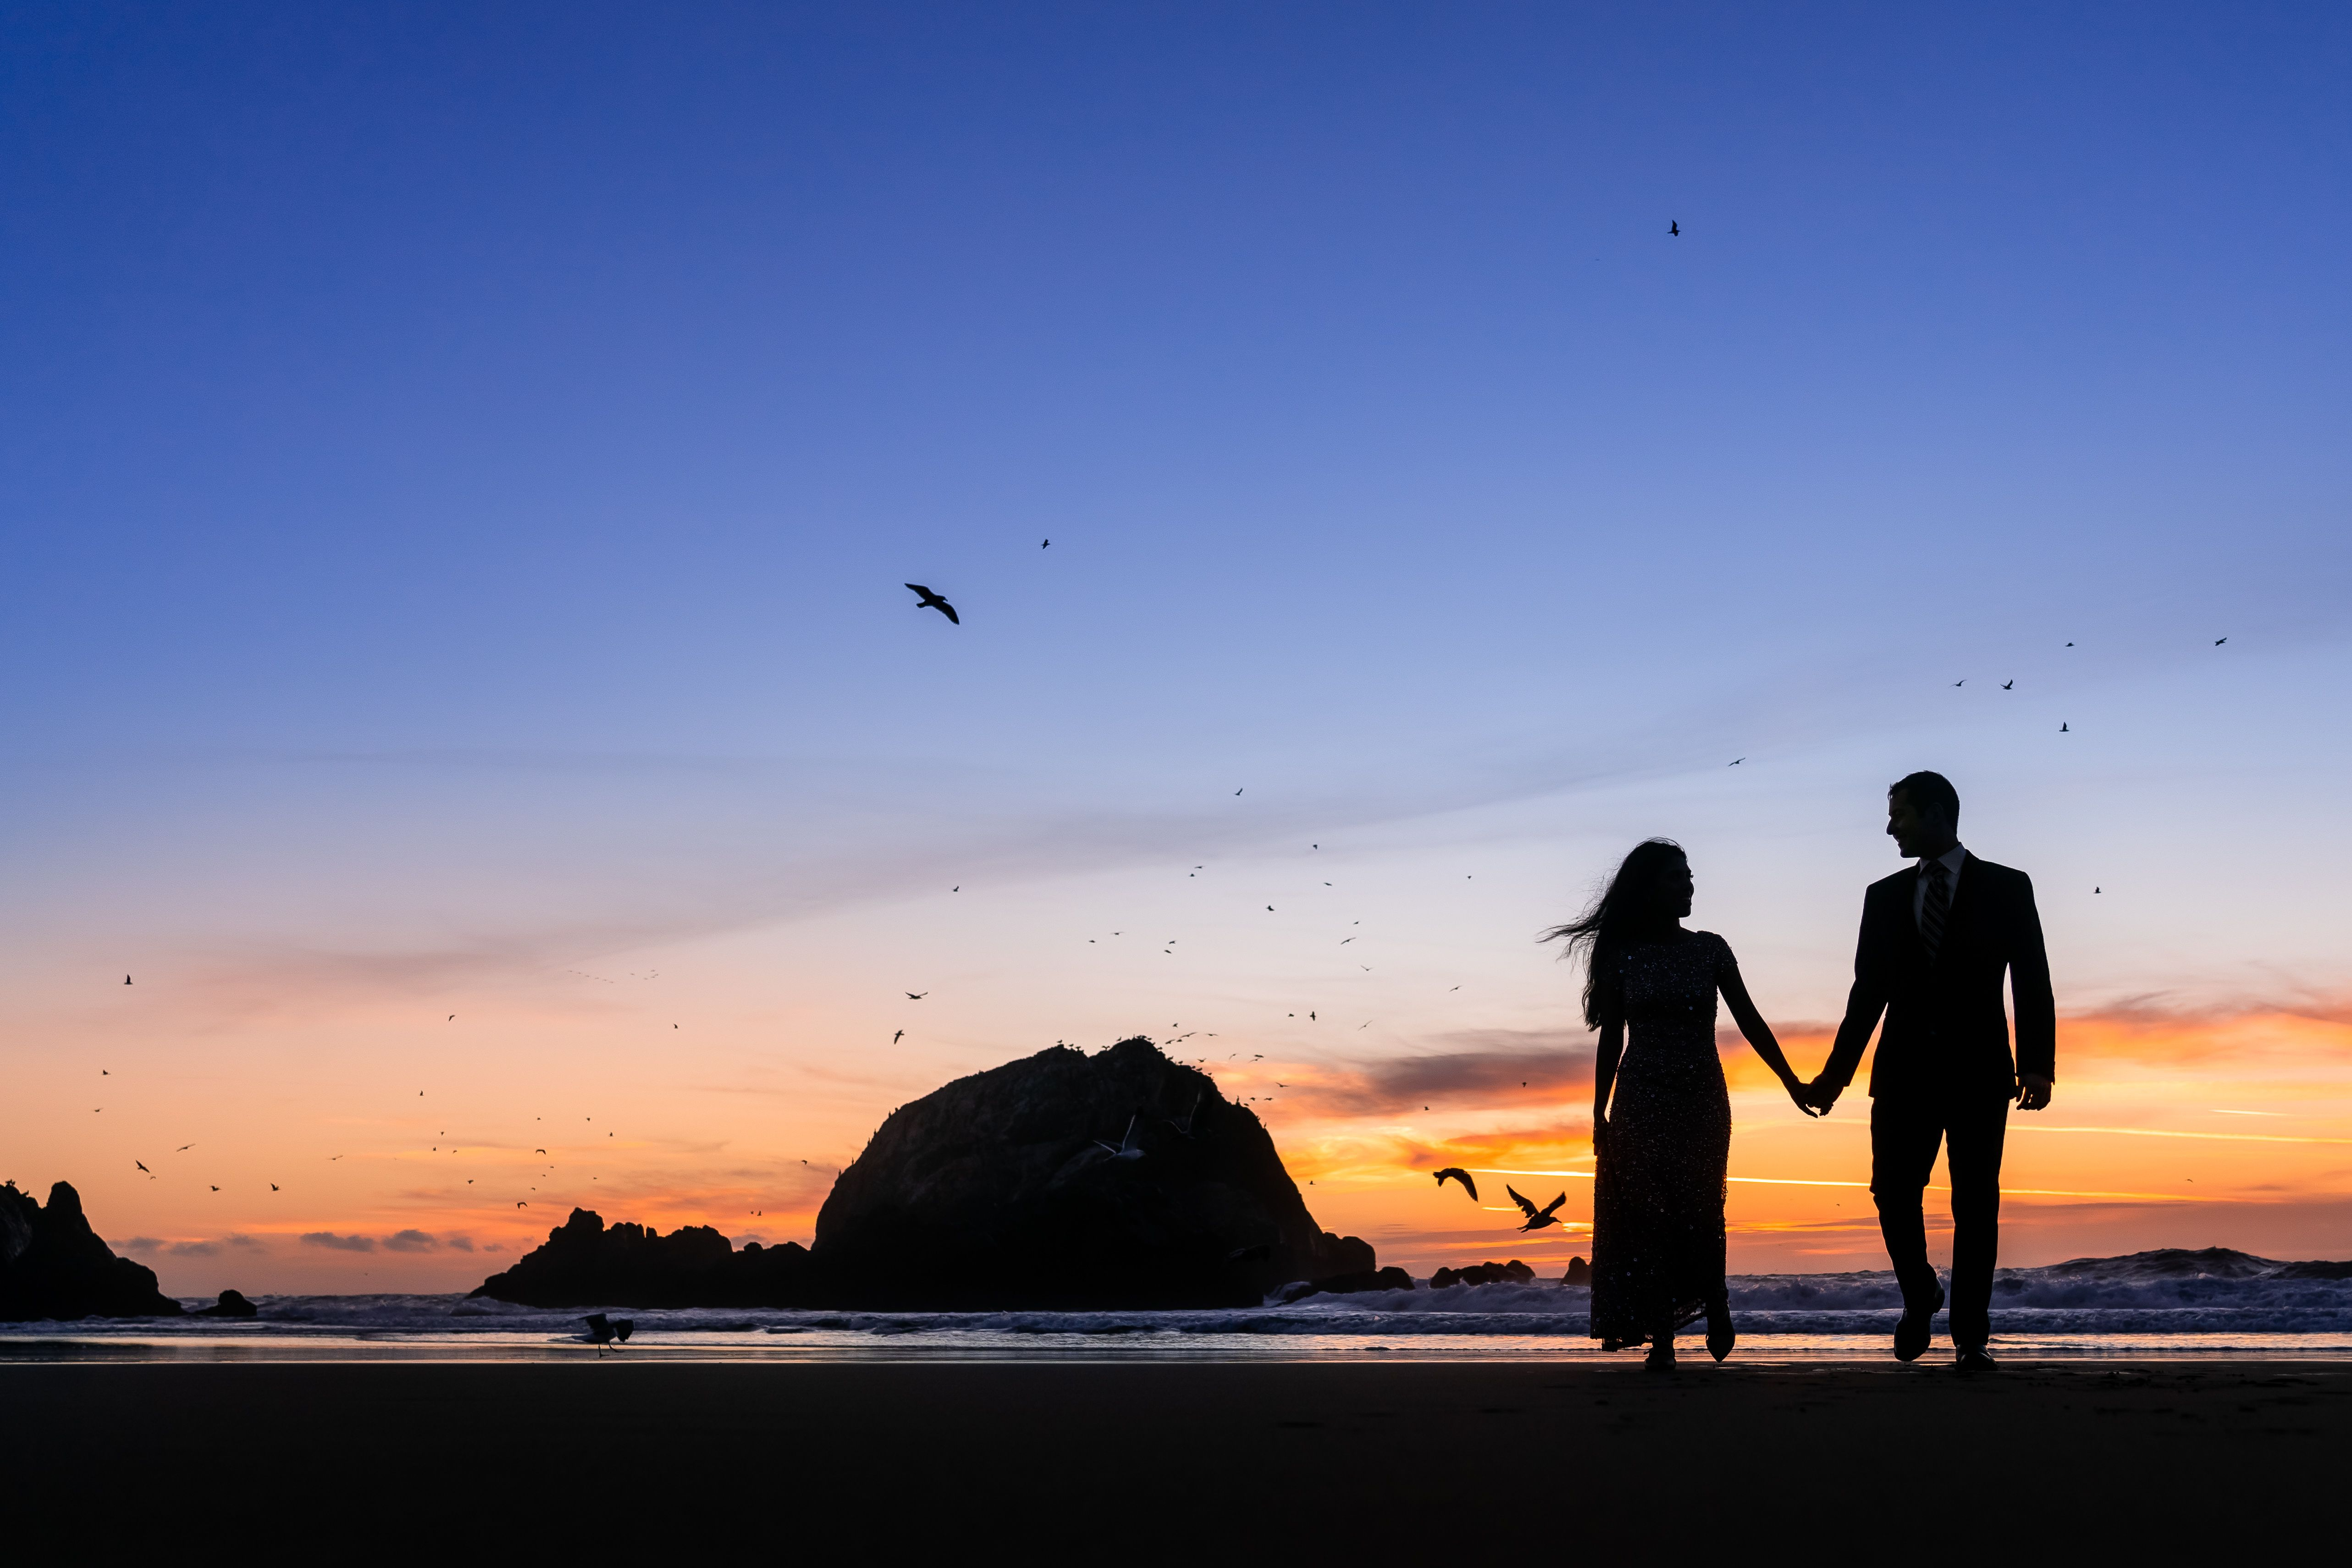 Silhouette Engagement Photo Idea Couples Walking Couple Beach Photos Beach Couple walk in beach love wallpapers hd